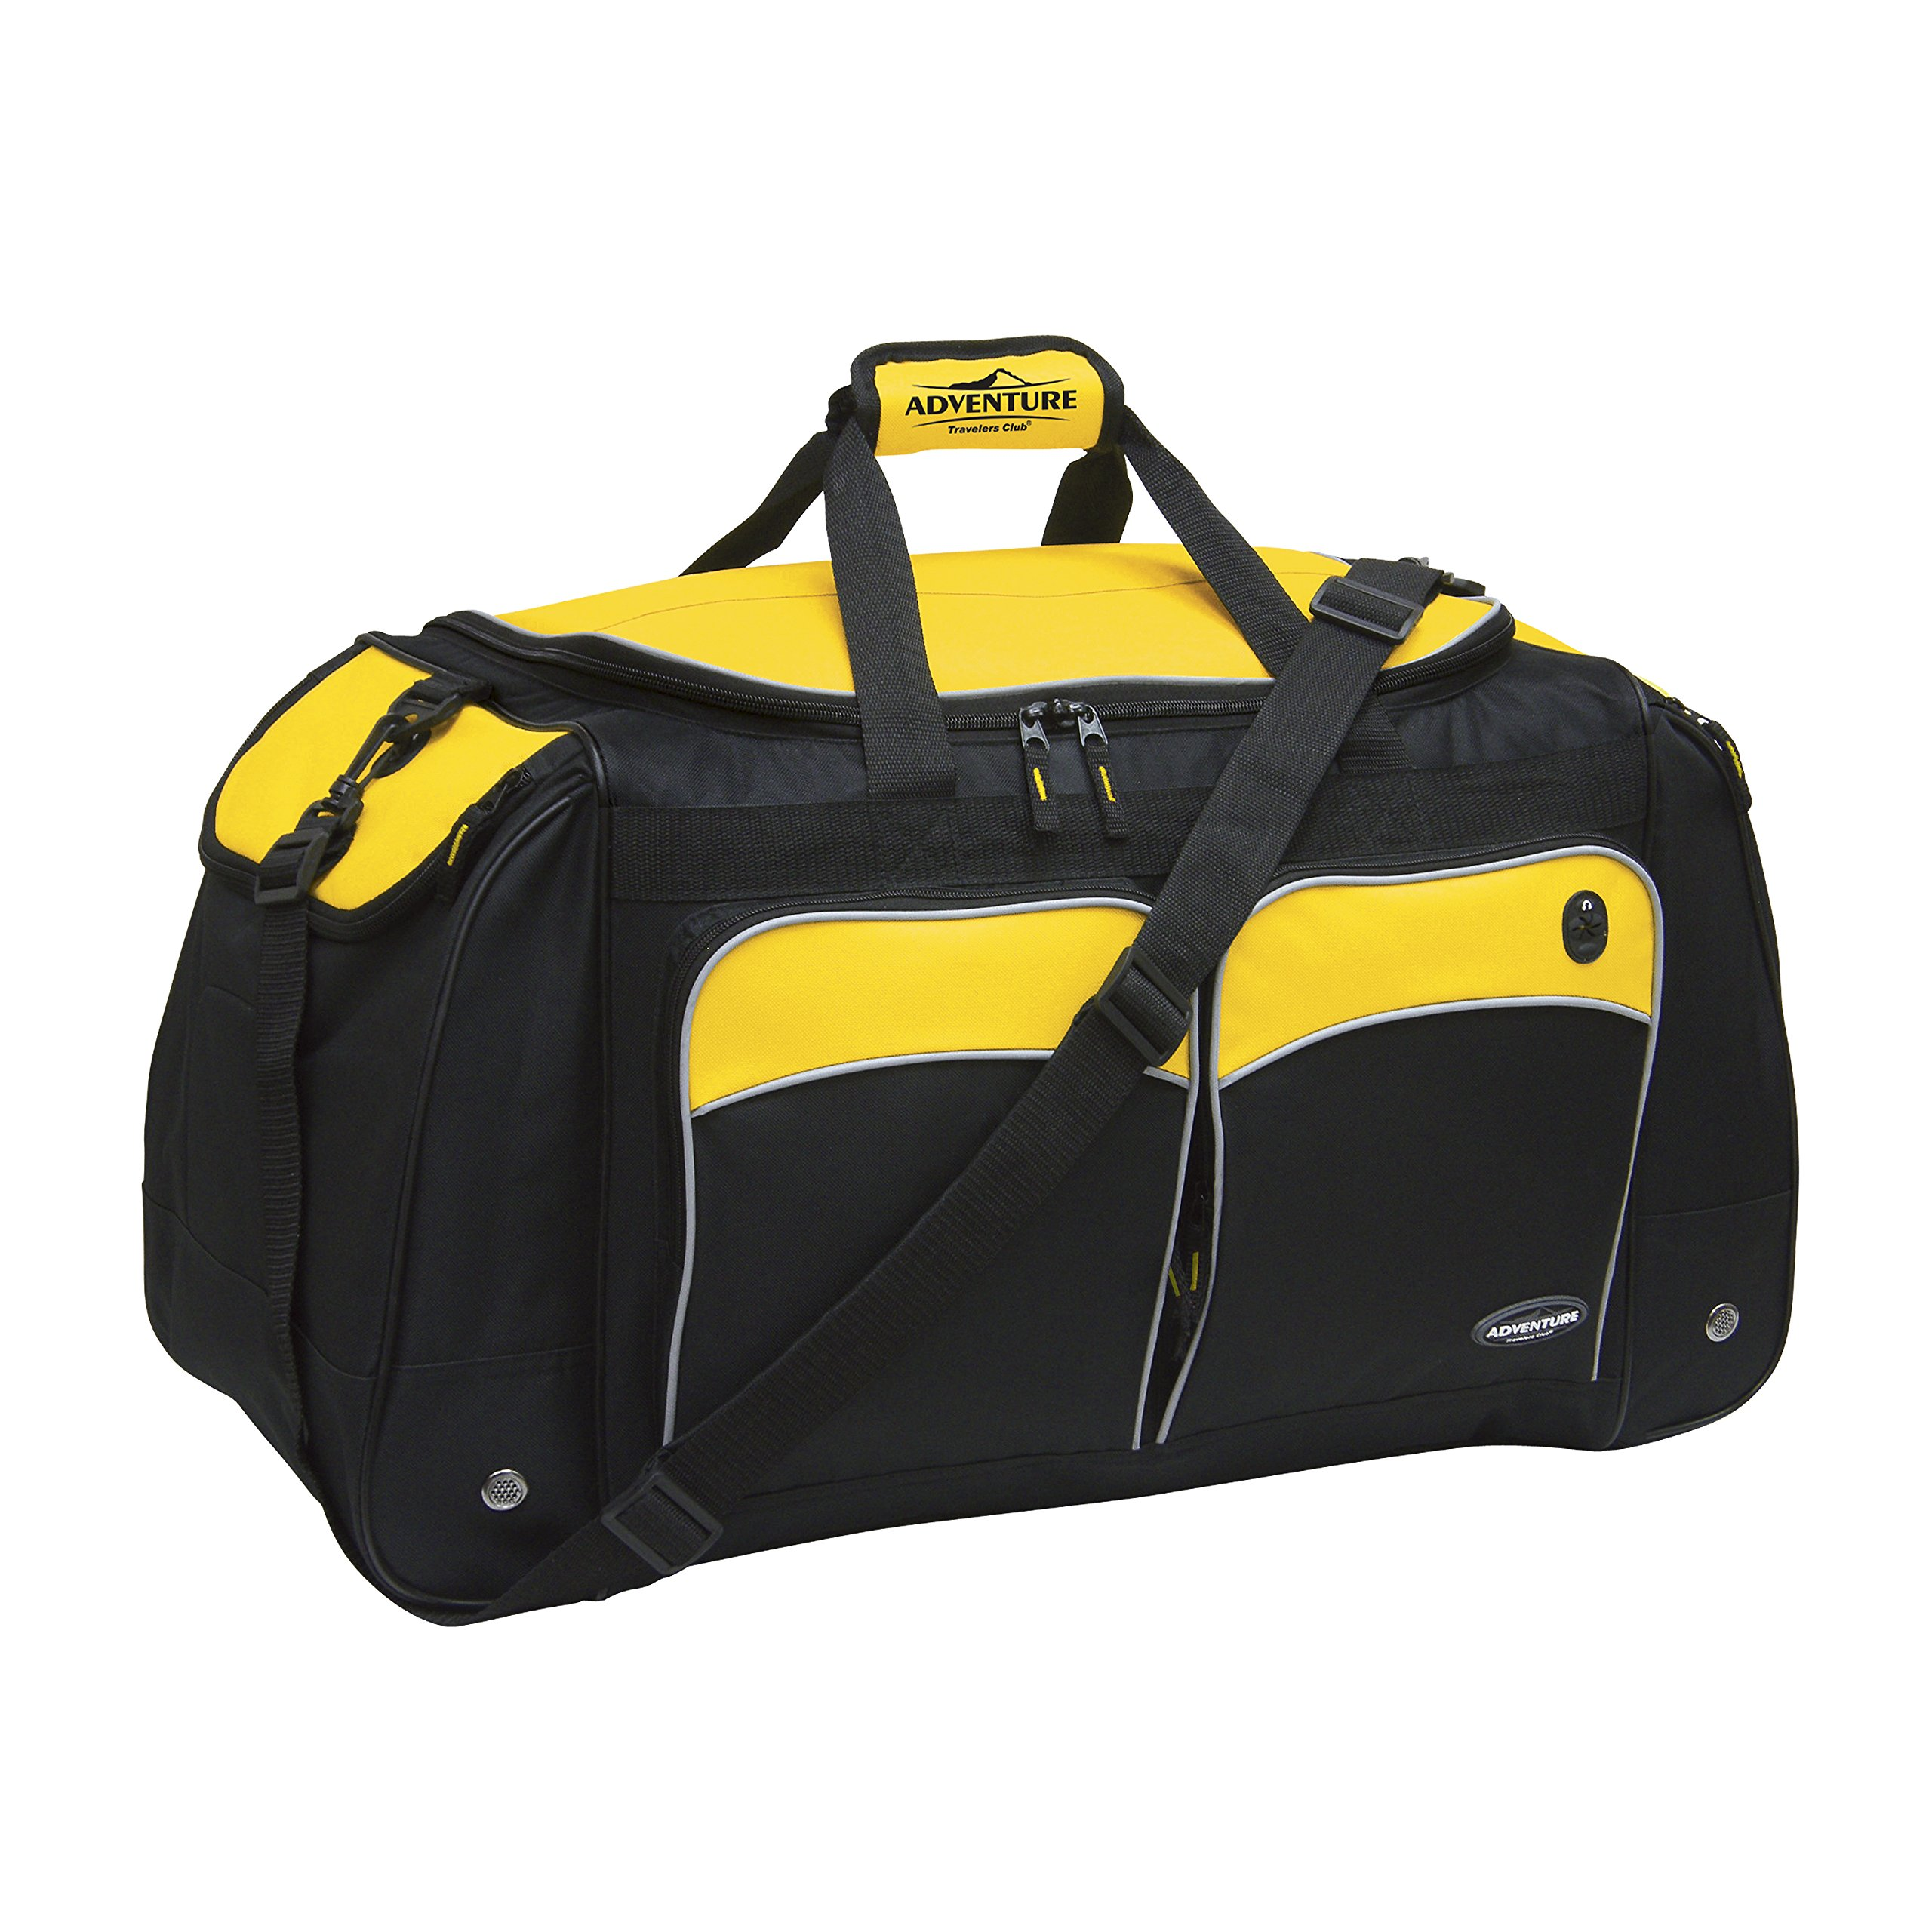 28'' Adventure by Travelers Club Luggage Multi-Pocket Weekender Duffel with Adjustable & Detachable Shoulder Strap, Mesh Water Pocket, and Spacious Packing Compartment, Yellow and Black Color Option